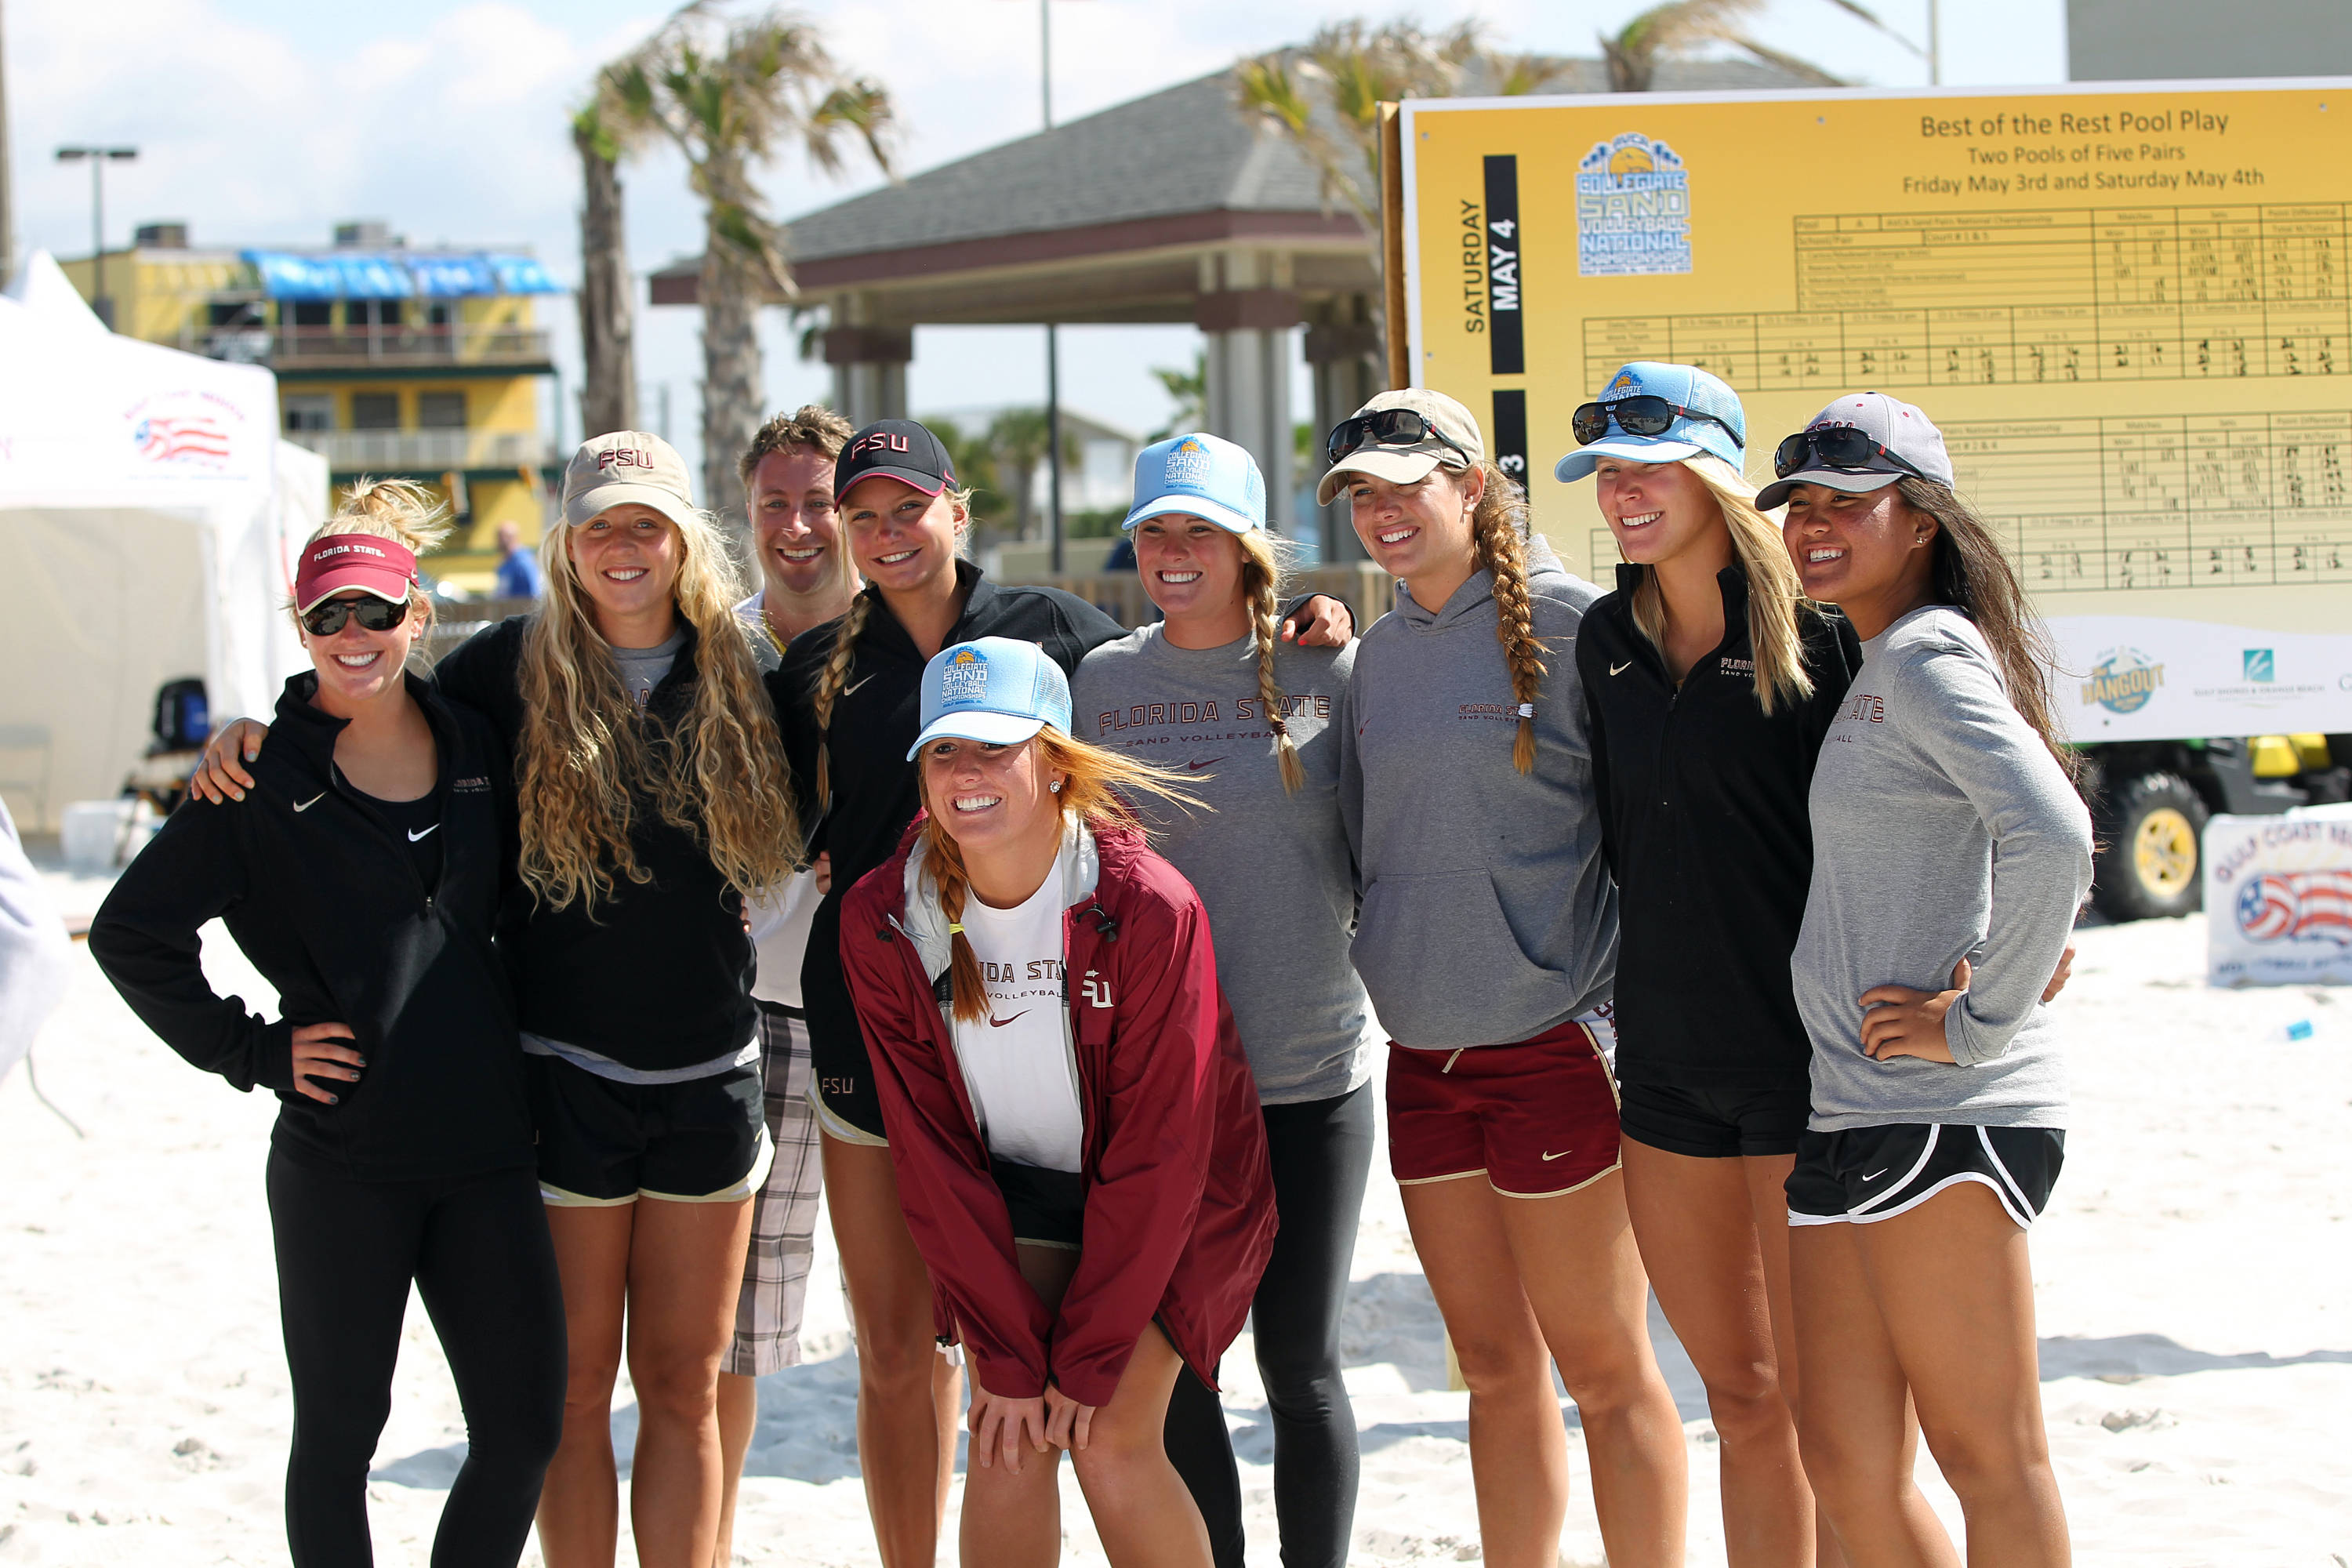 AVCA Collegiate Sand Volleyball National  Championships - Pairs,  Gulf Shores, Alabama, 05/05/13 . (Photo by Steve Musco)